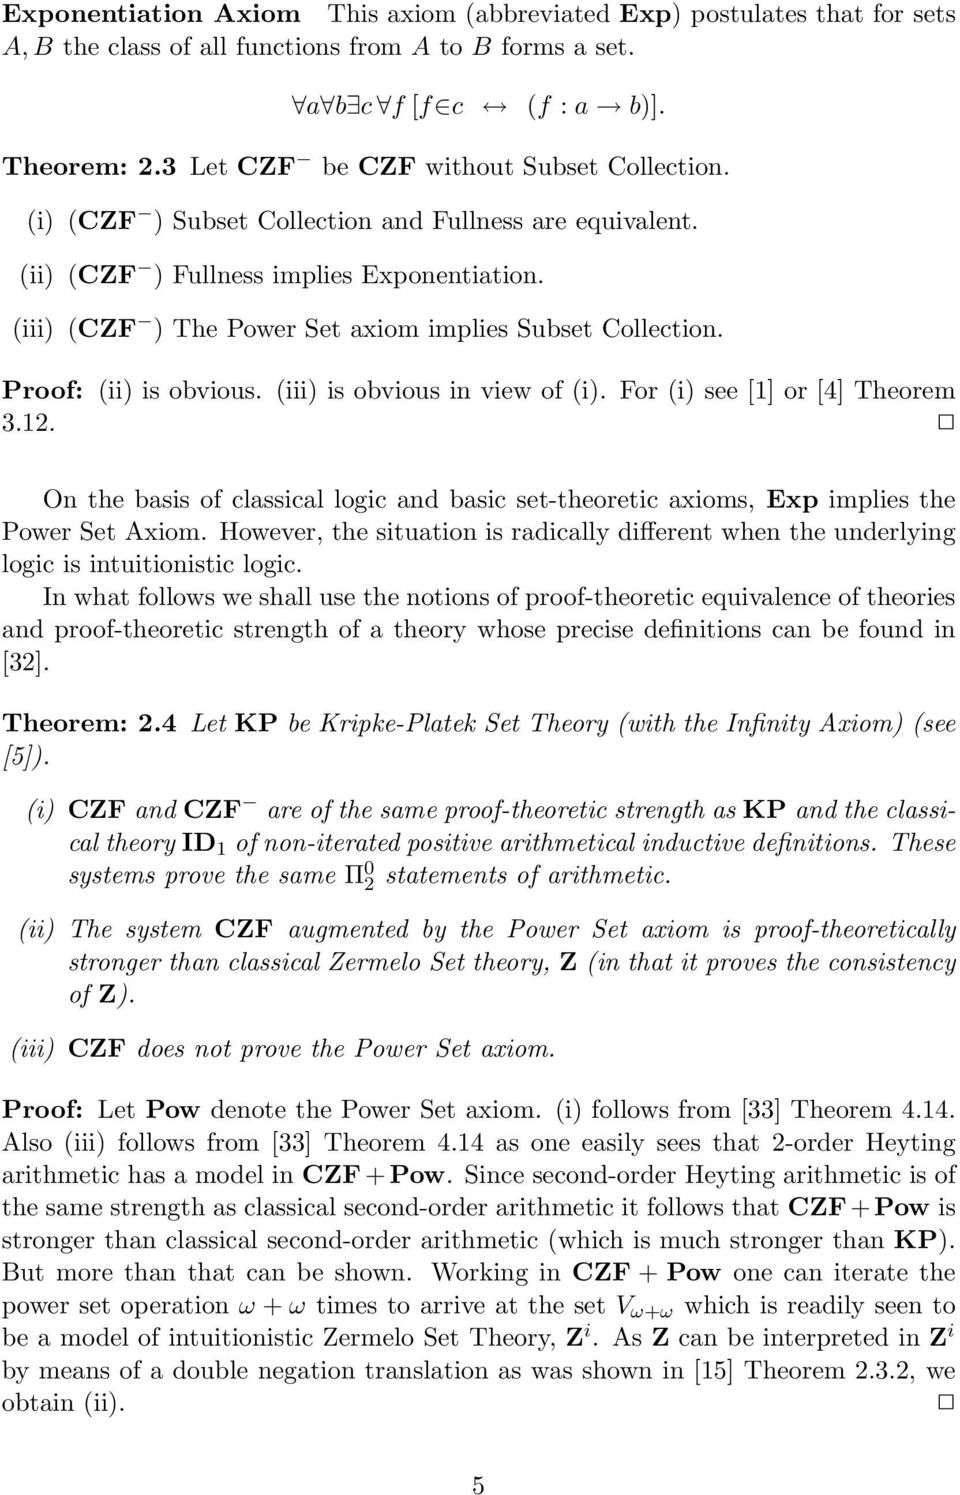 (iii) (CZF ) The Power Set axiom implies Subset Collection. Proof: (ii) is obvious. (iii) is obvious in view of (i). For (i) see [1] or [4] Theorem 3.12.